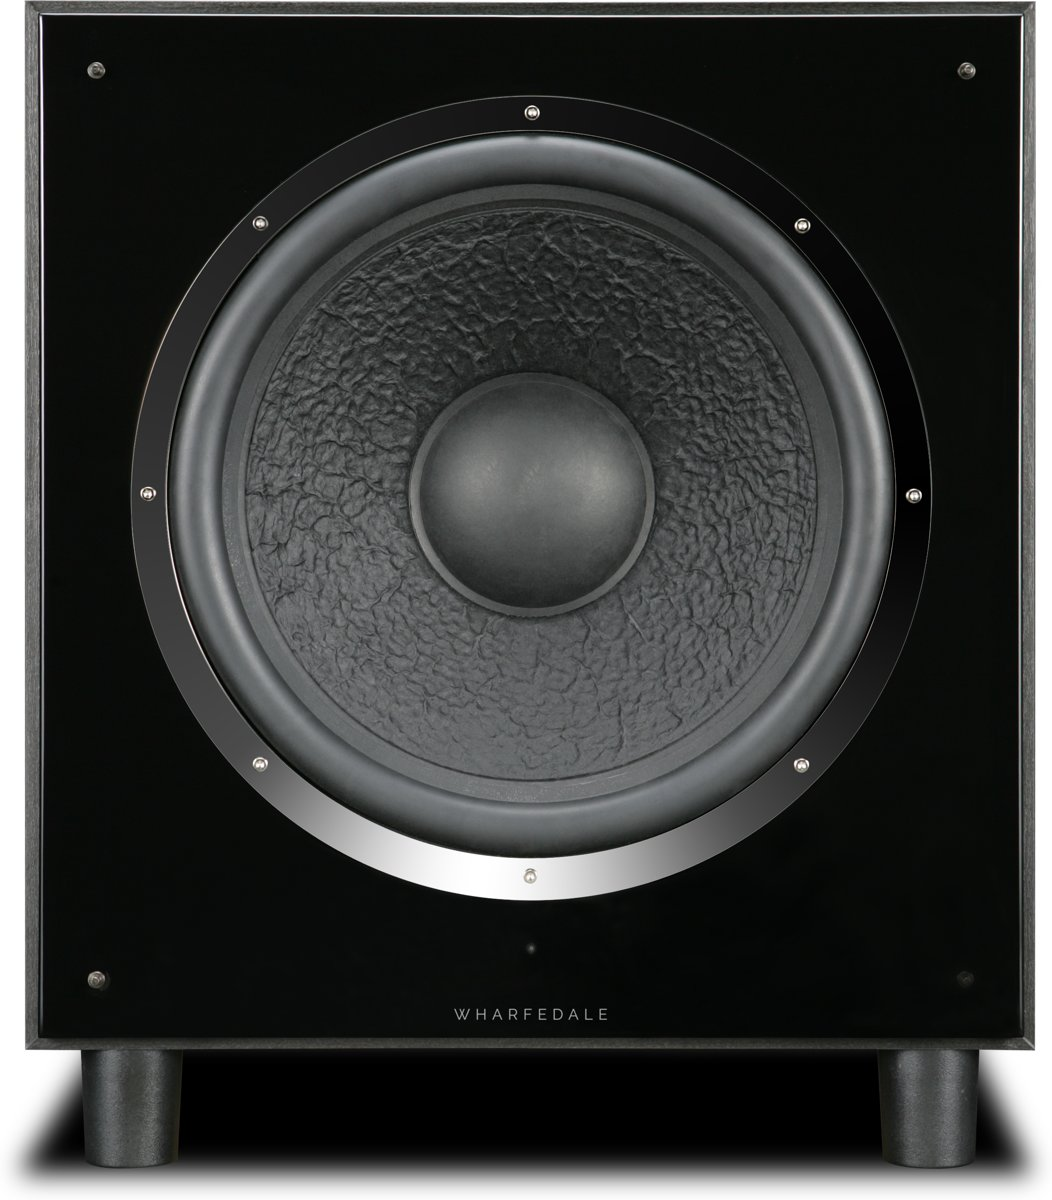 Wharfedale SW-15 Subwoofer Black